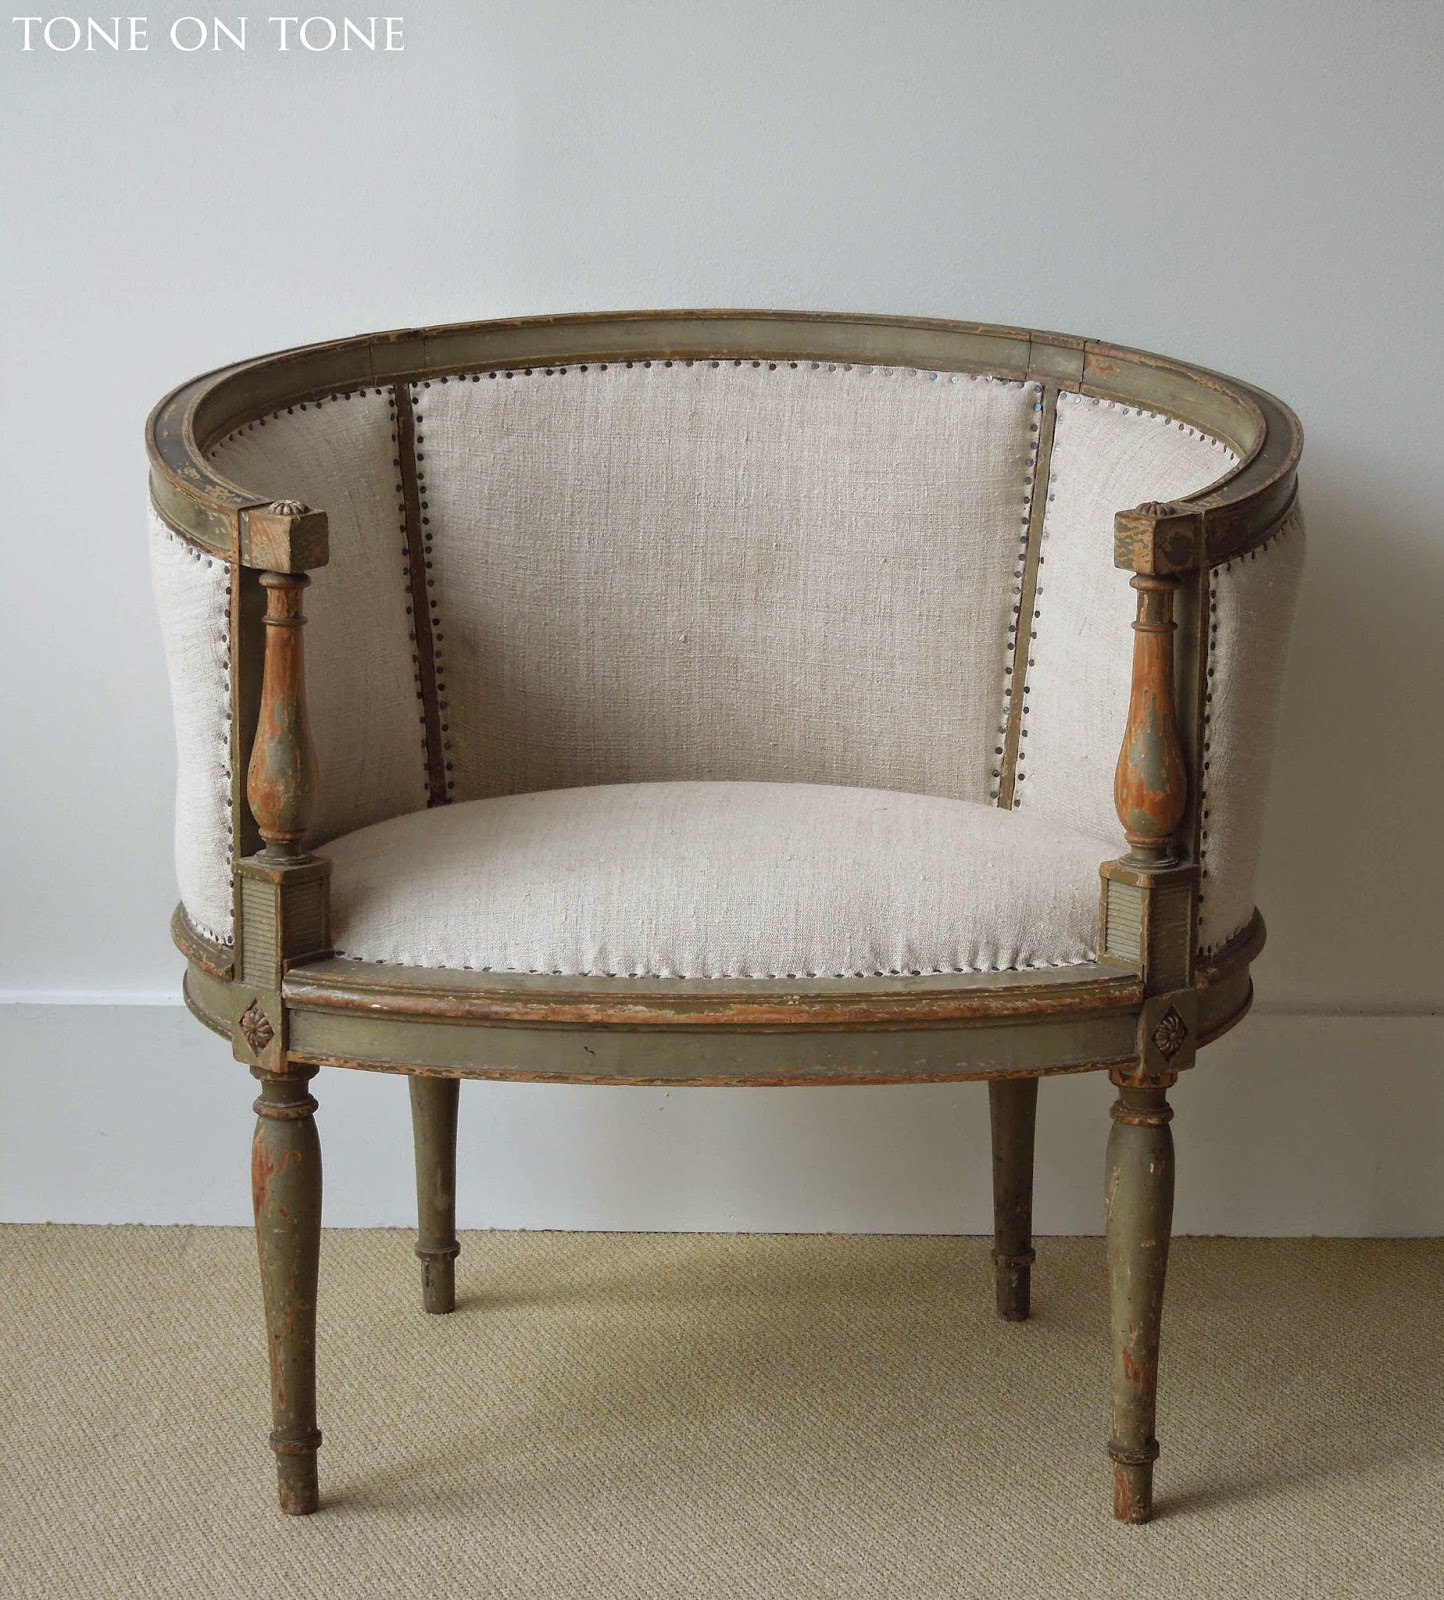 Antique barrel chair - This Vignette Features A French 1770 90s Trumeau Mirror Early 1900s Large Sunburst Mirror And Late 1890s Directoire Style Armchairs One Shown Here